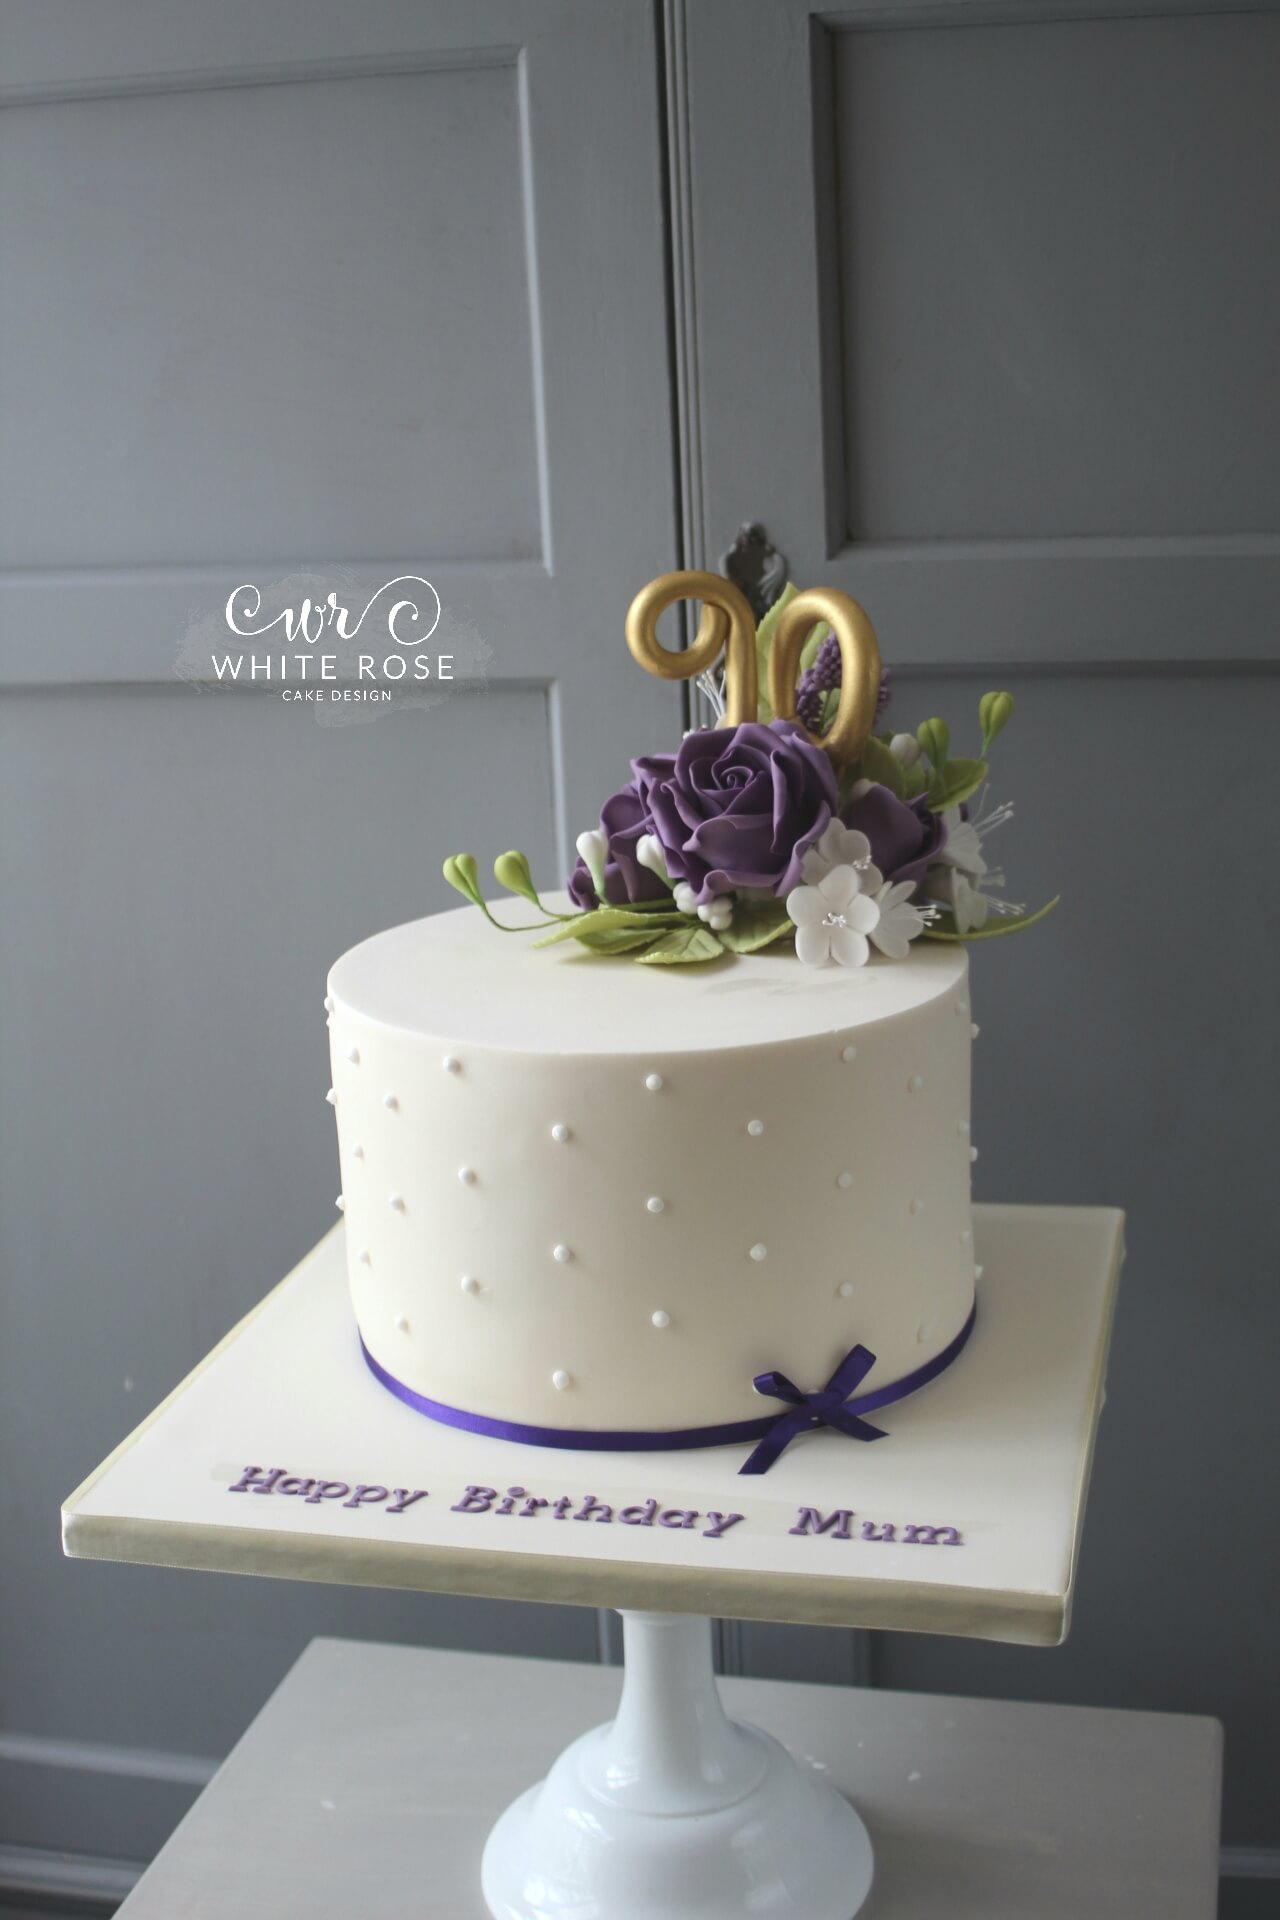 90th BIrthday Cake With Purple Flowers By White Rose Design West Yorkshire Maker